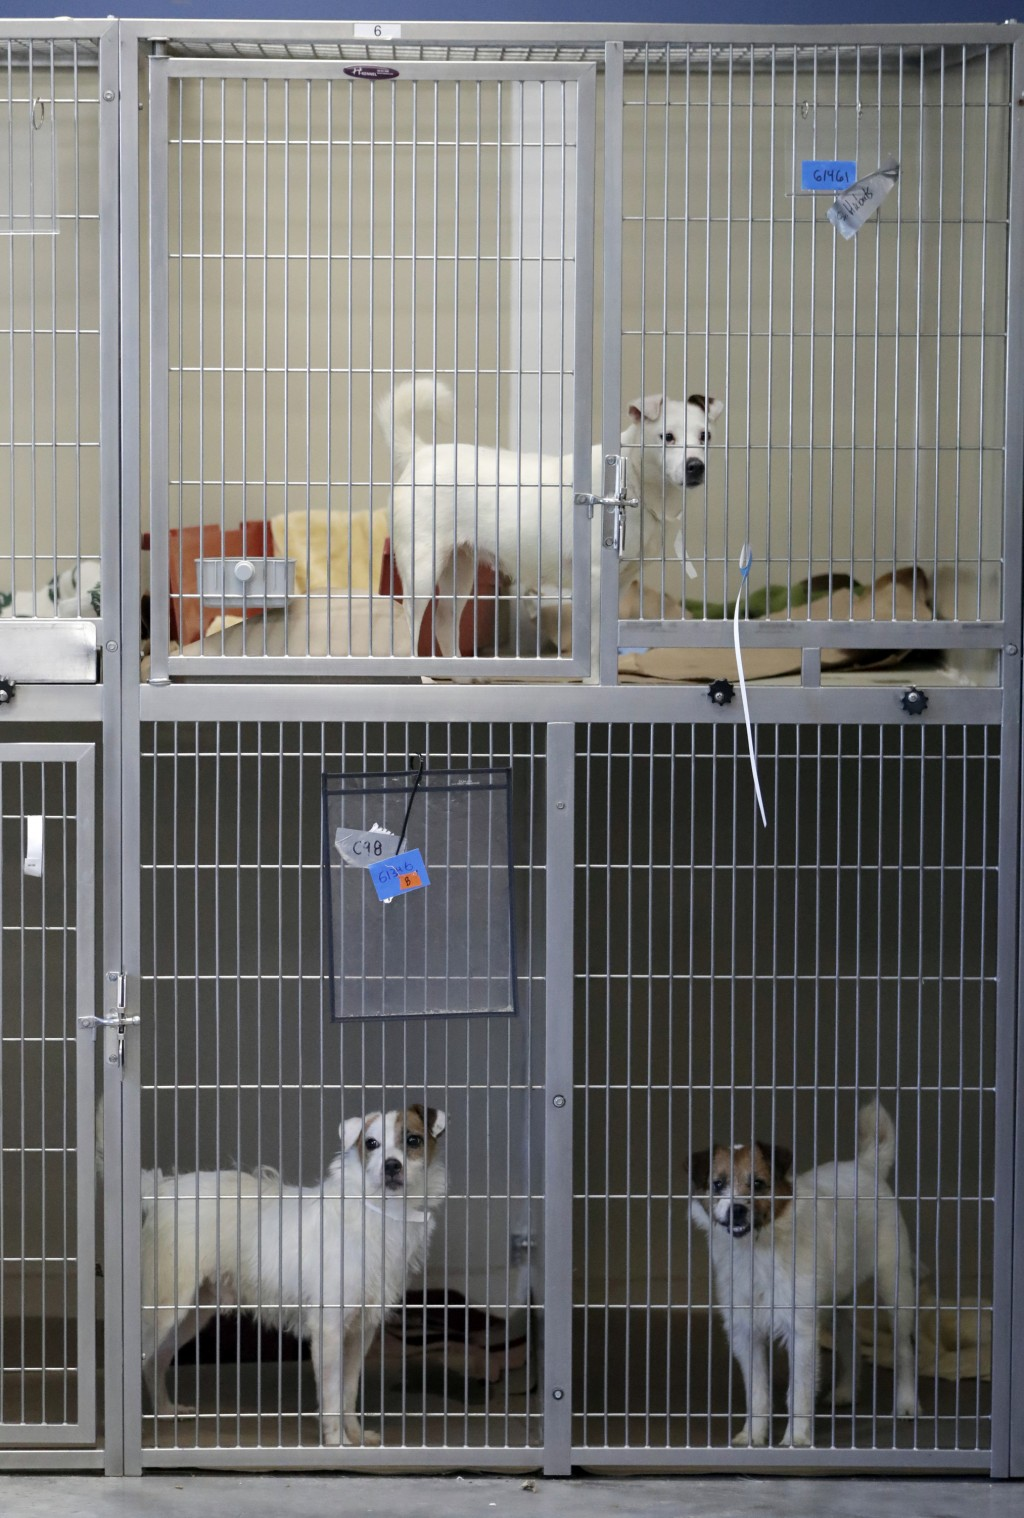 Parson Russell terriers, some of many terriers confiscated from a home in Kingwood, N.J., sits in a kennel at St. Hubert's Animal Welfare Center after